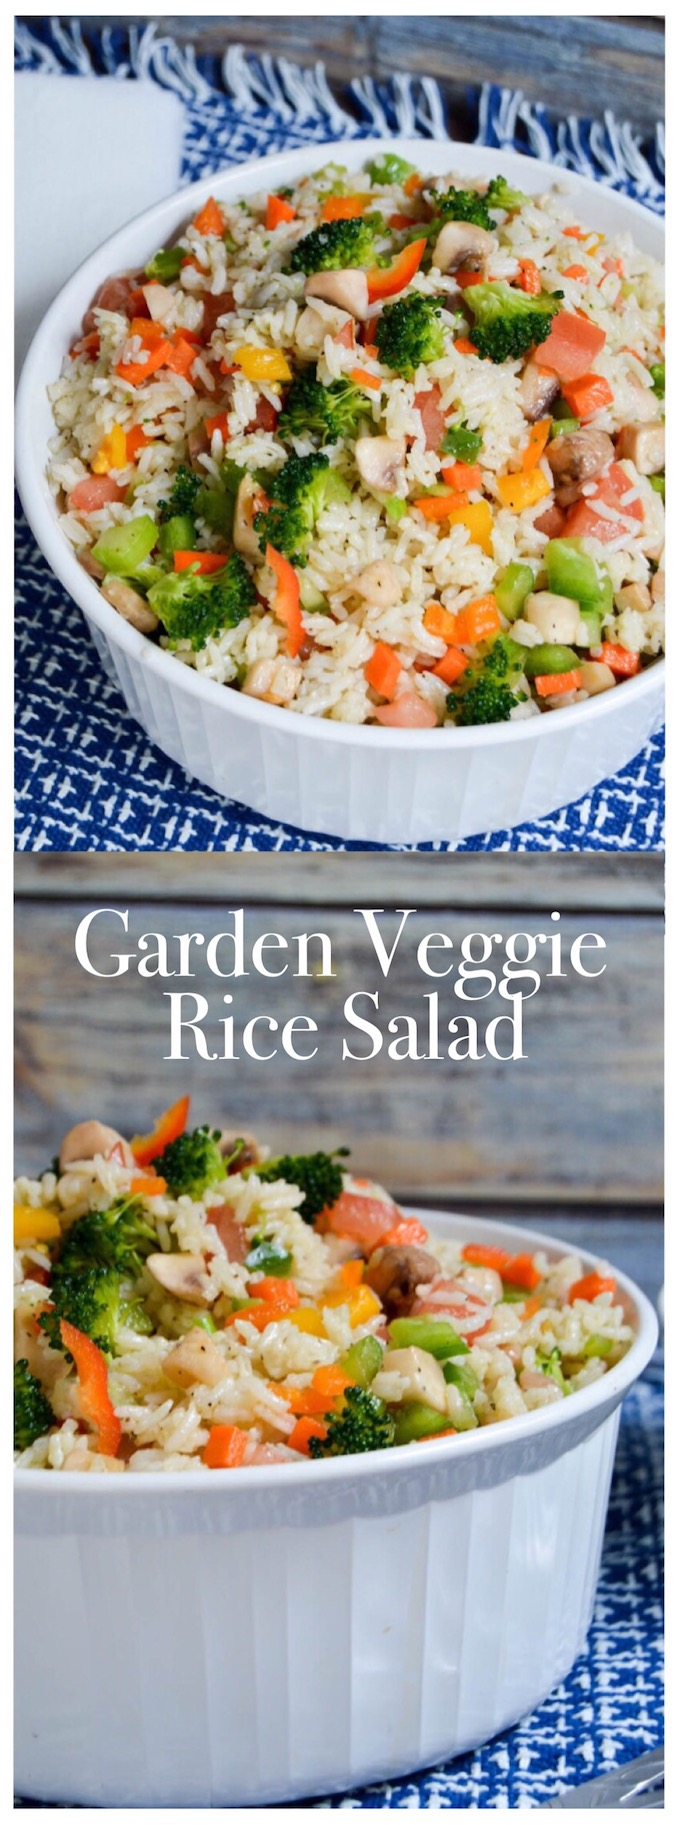 This Garden Veggie Rice Salad is not only healthy and delicious but also leaves you feeling full and satisfied afterwards. It's so quick to put together! | healthy rice recipes | healthy vegetable recipes | simple dinner recipes | quick dinner recipes | healthy dinner recipes | how to use garden vegetables | garden vegetable recipes || Design Dazzle #healthyrecipes